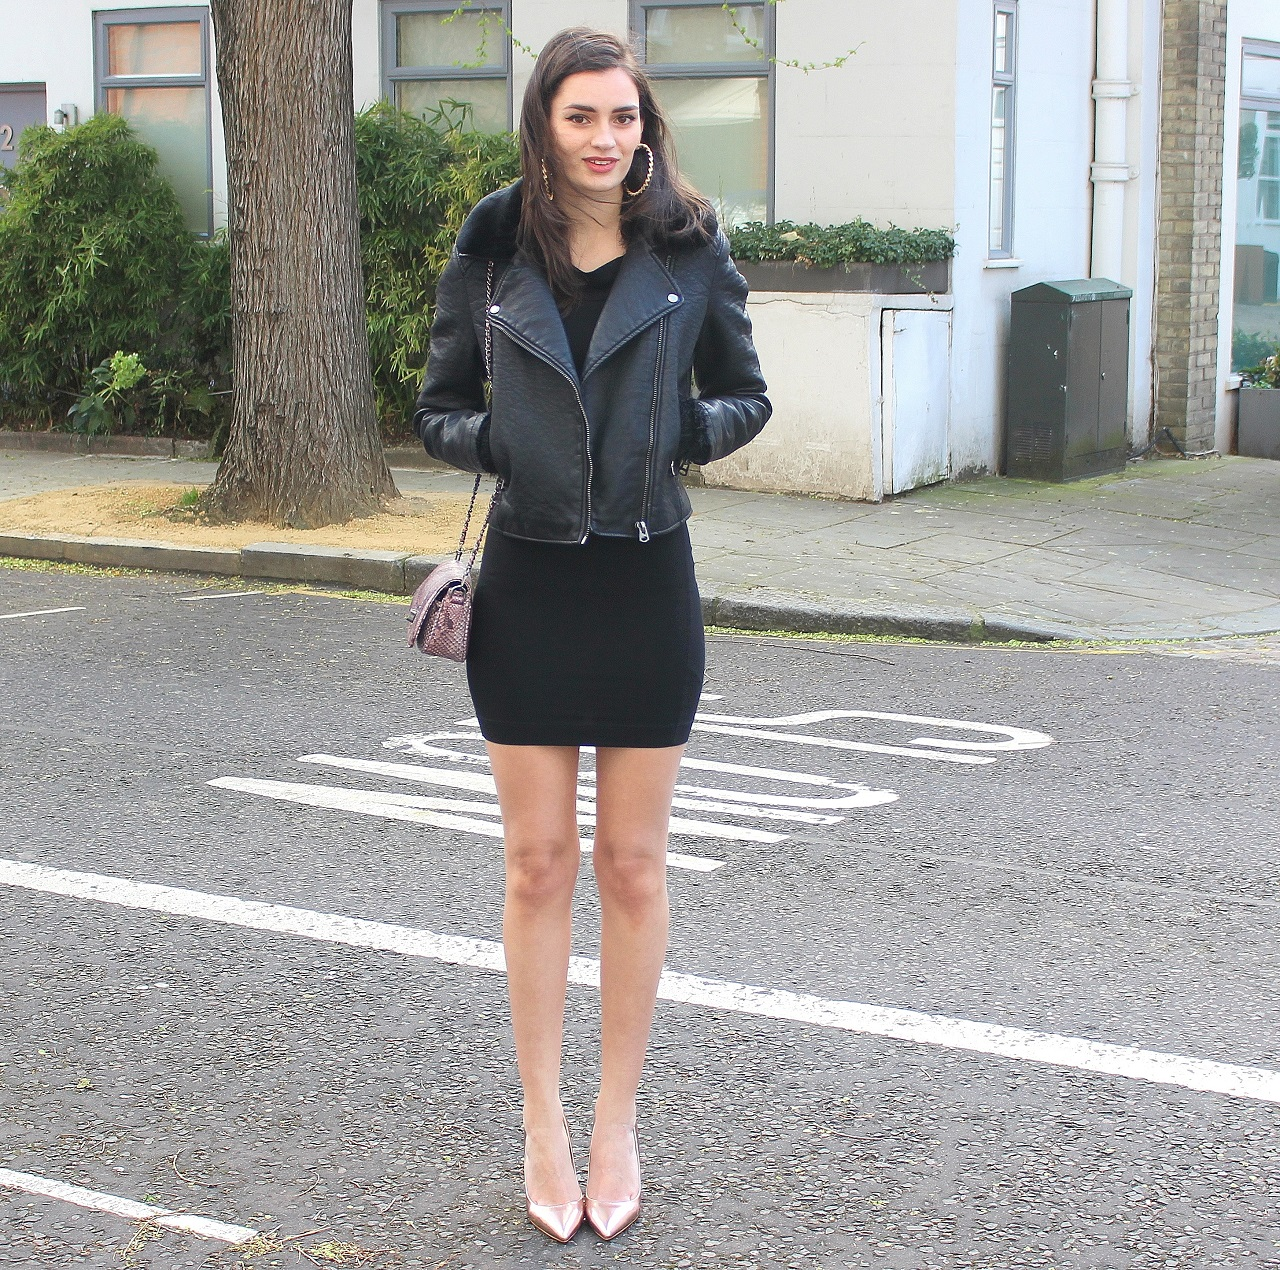 Leather Jacket Top Dress Miss Selfridge Similar Heels Dorothy Perkins Bag C O Marc B